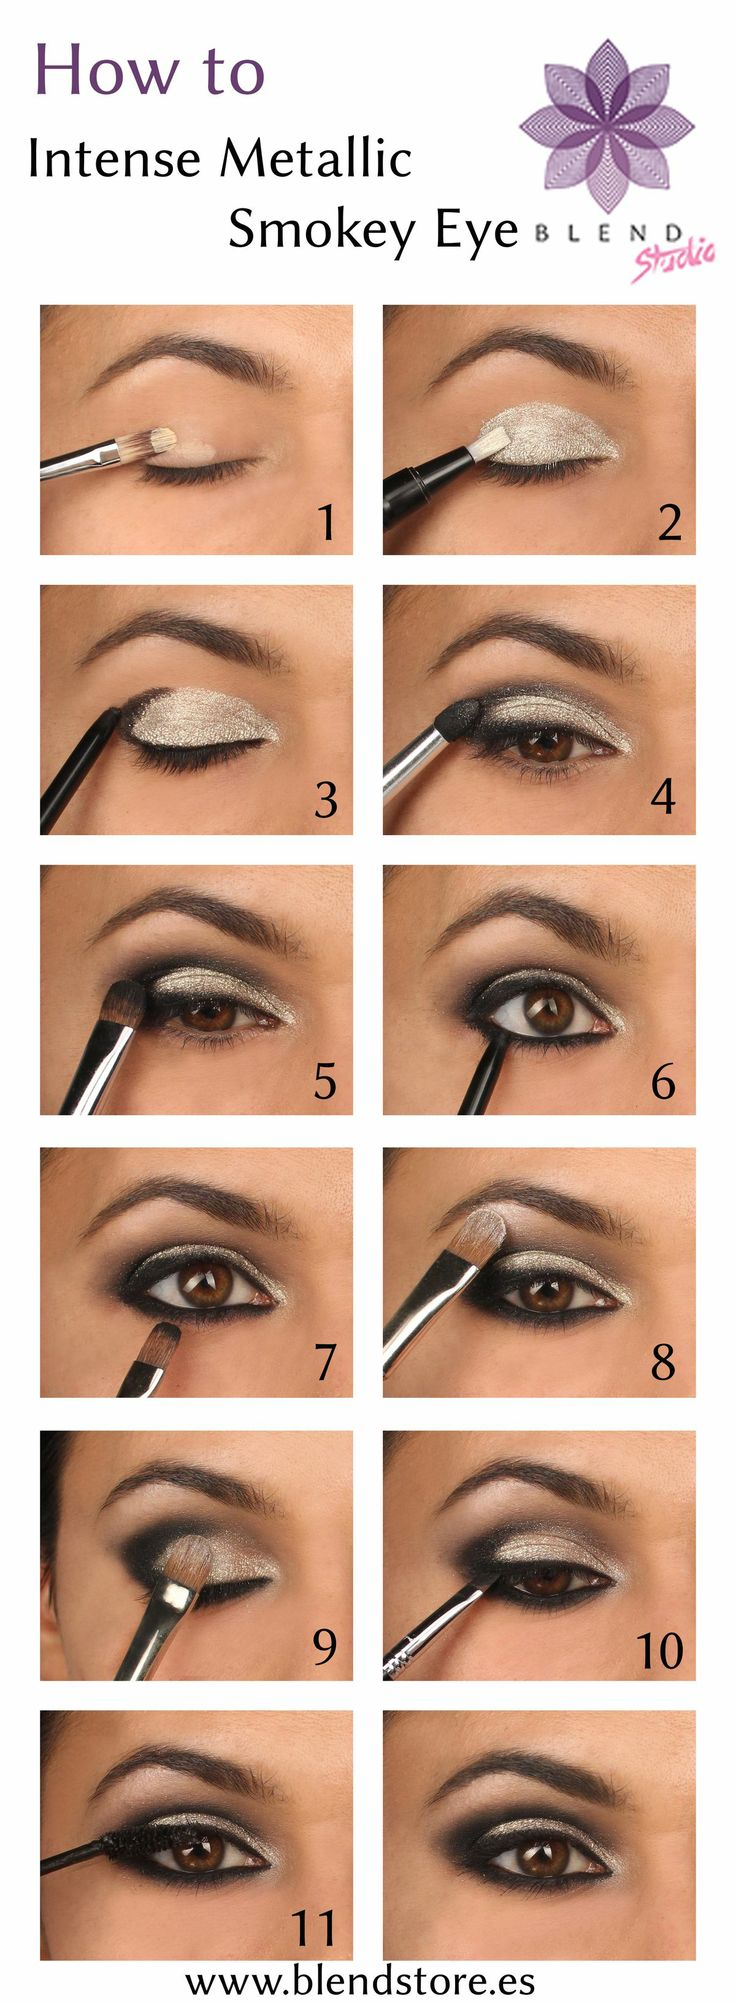 15 wonderful party eye makeup ideas pretty designs. Black Bedroom Furniture Sets. Home Design Ideas